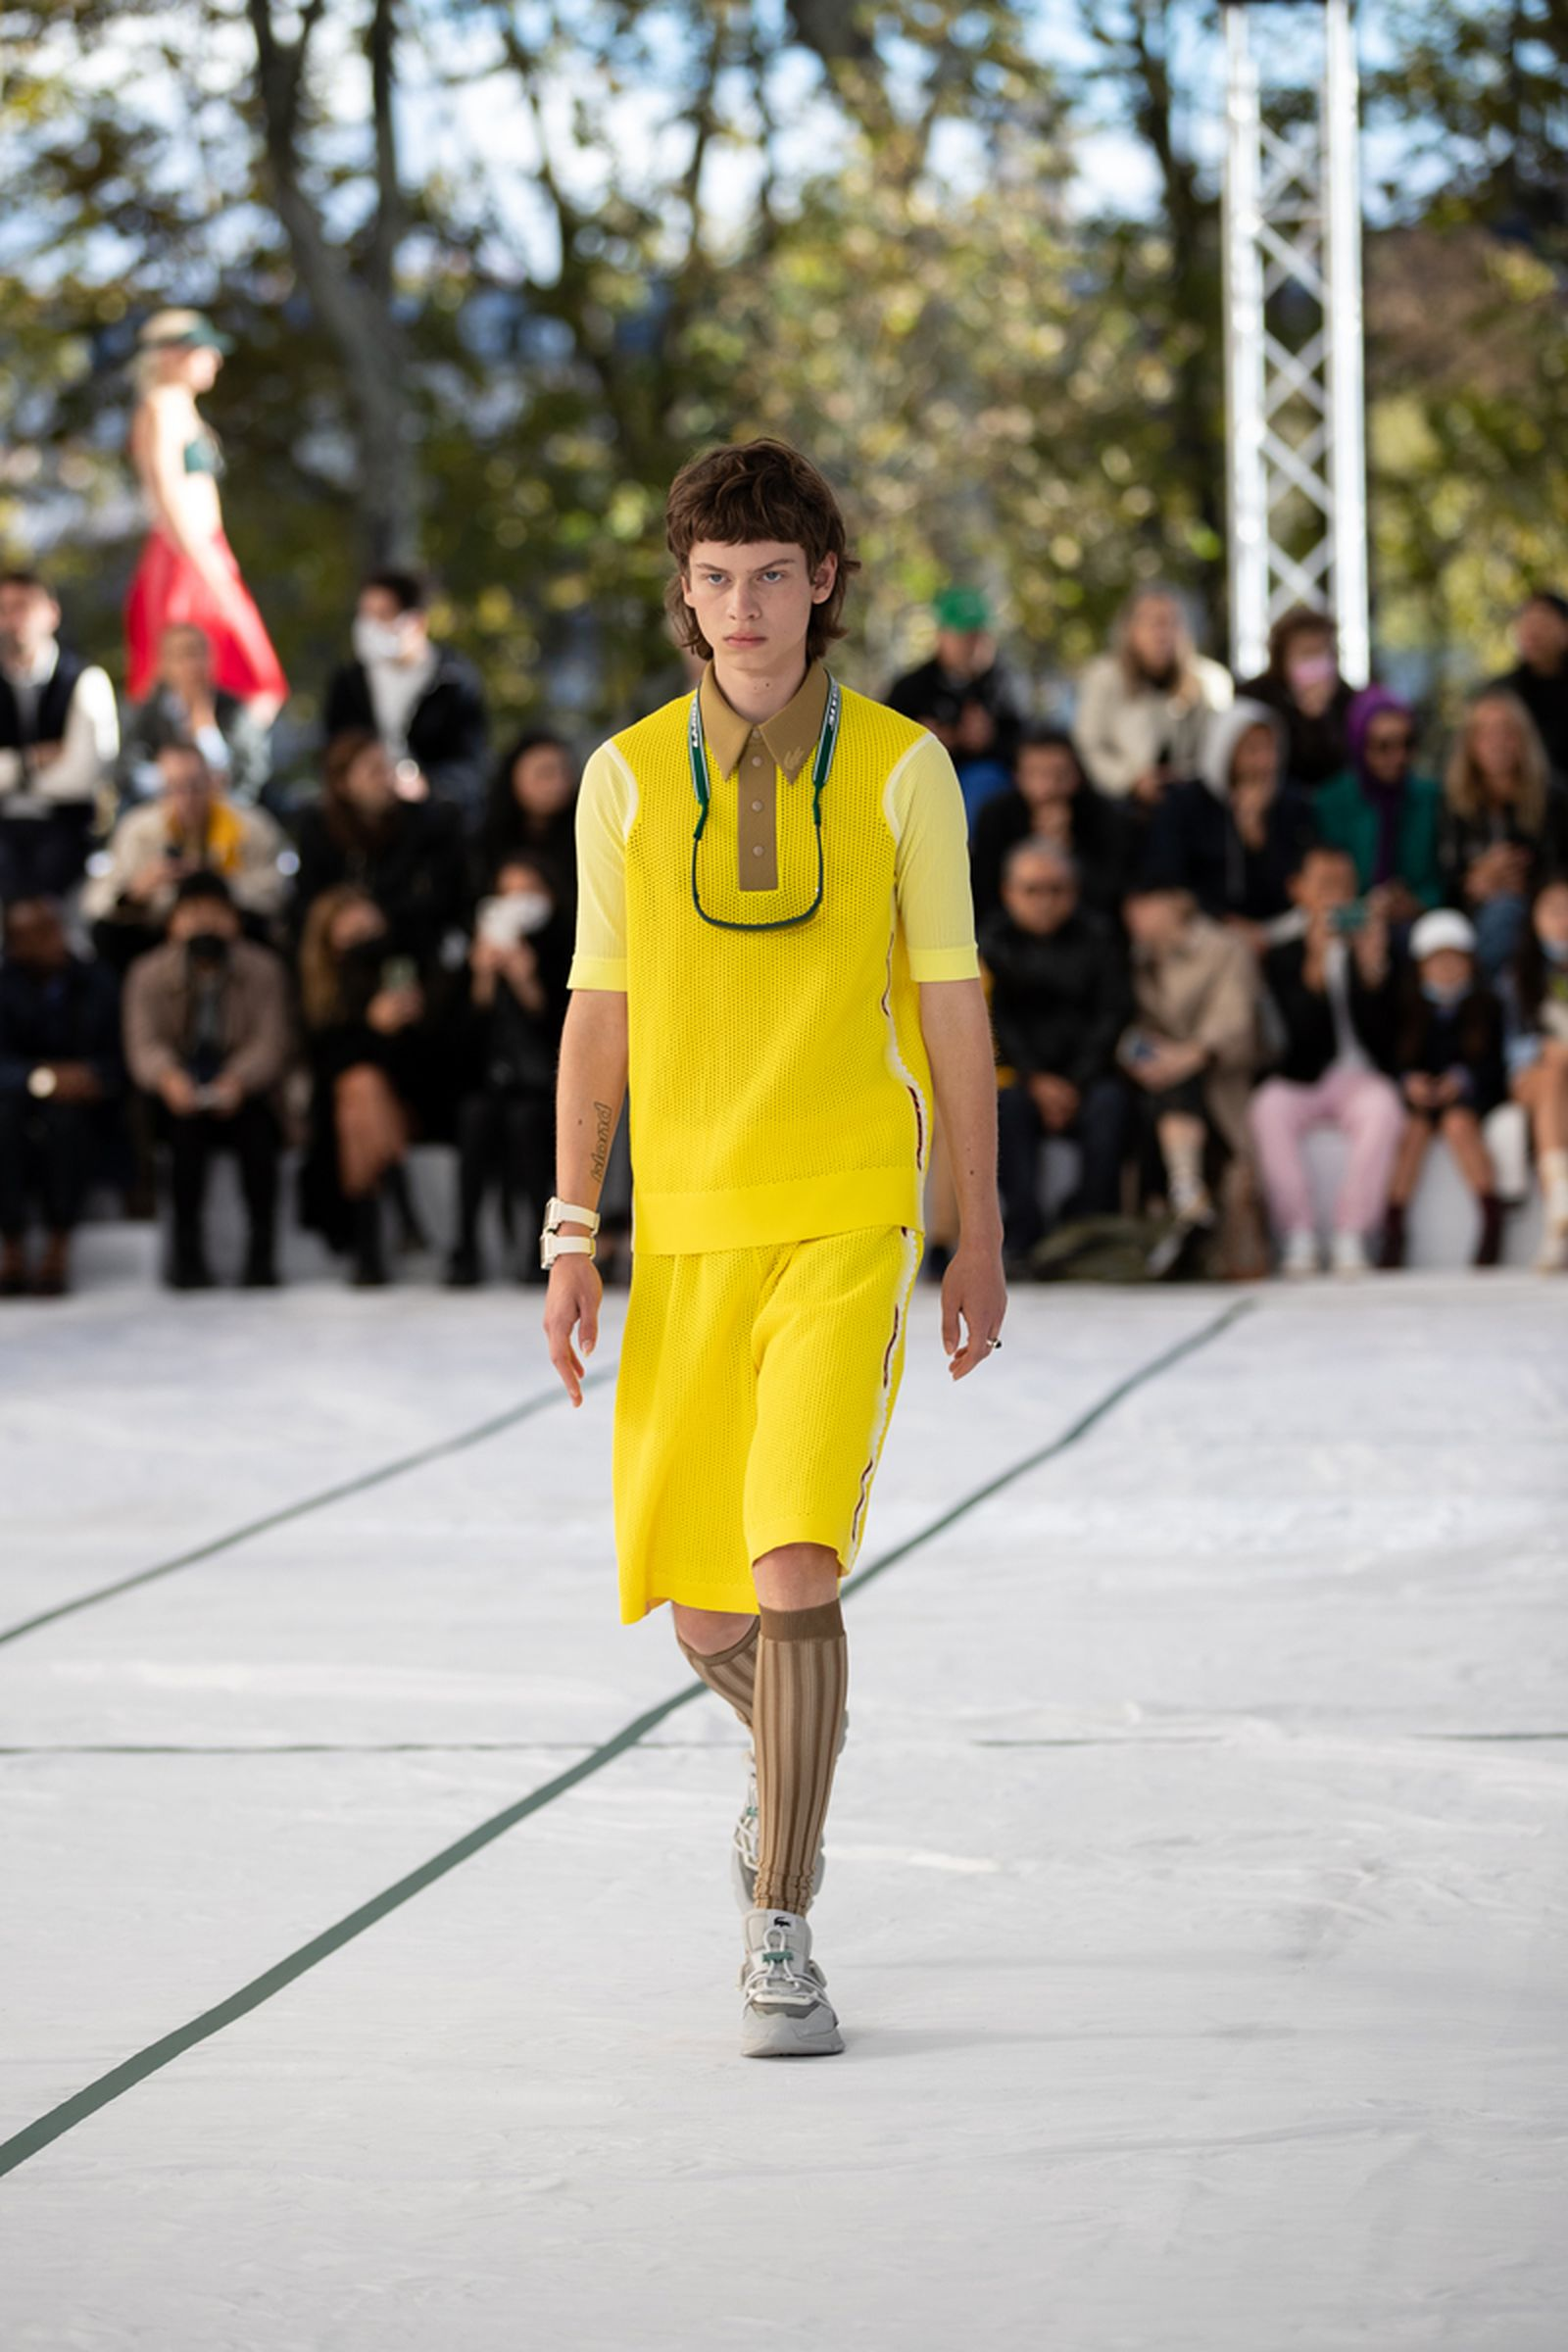 lacoste-spring-summer-2022-collection (18)